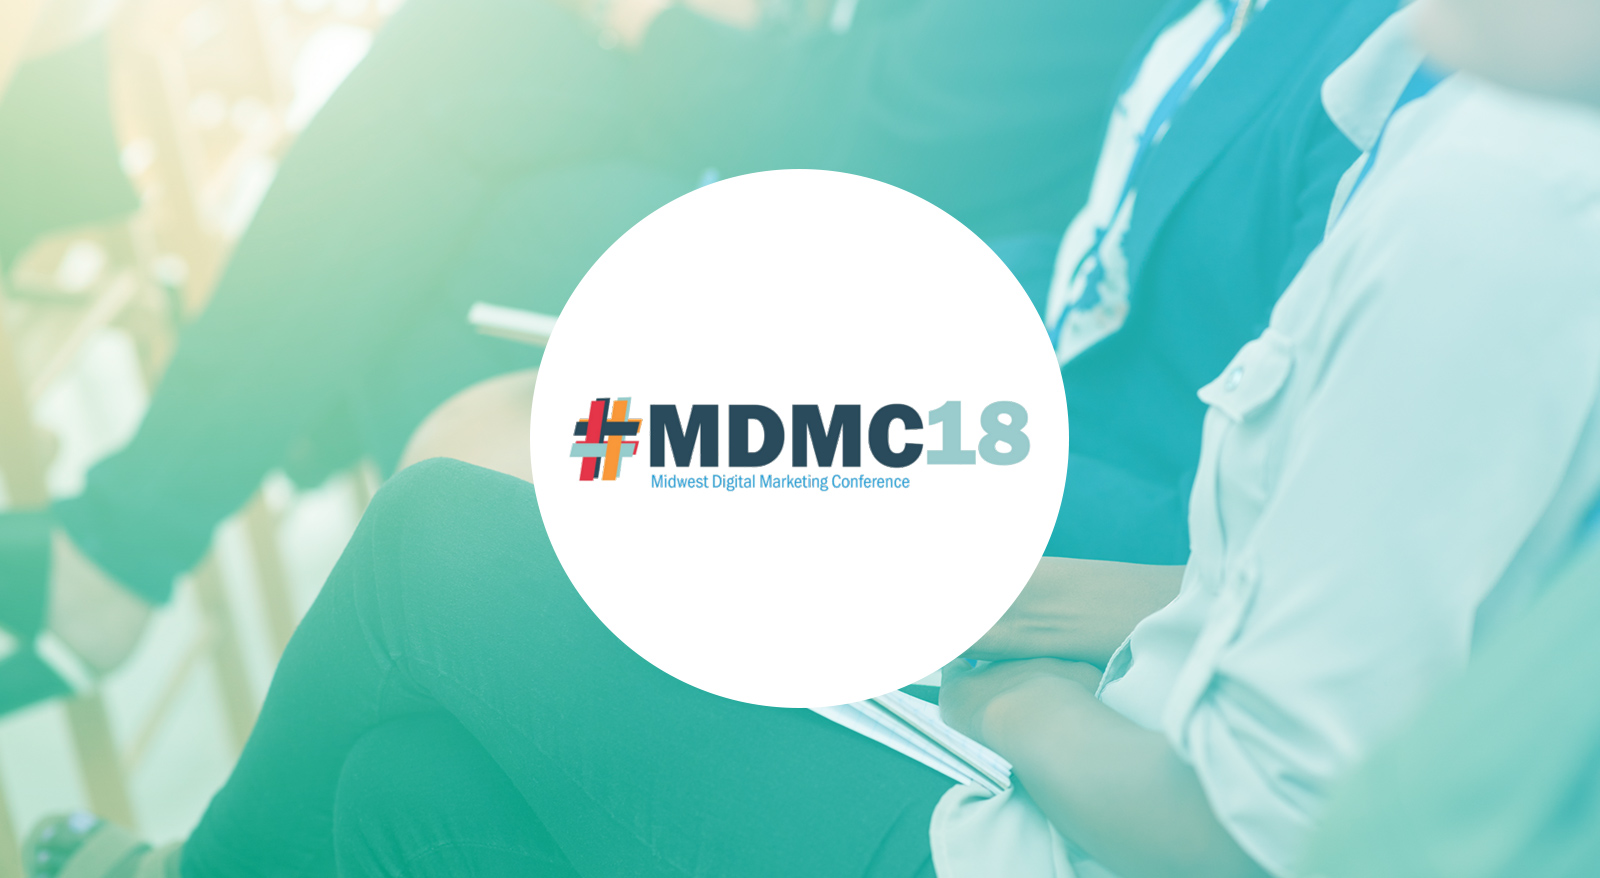 MDMC 2018 Midwest Digital Marketing Conference